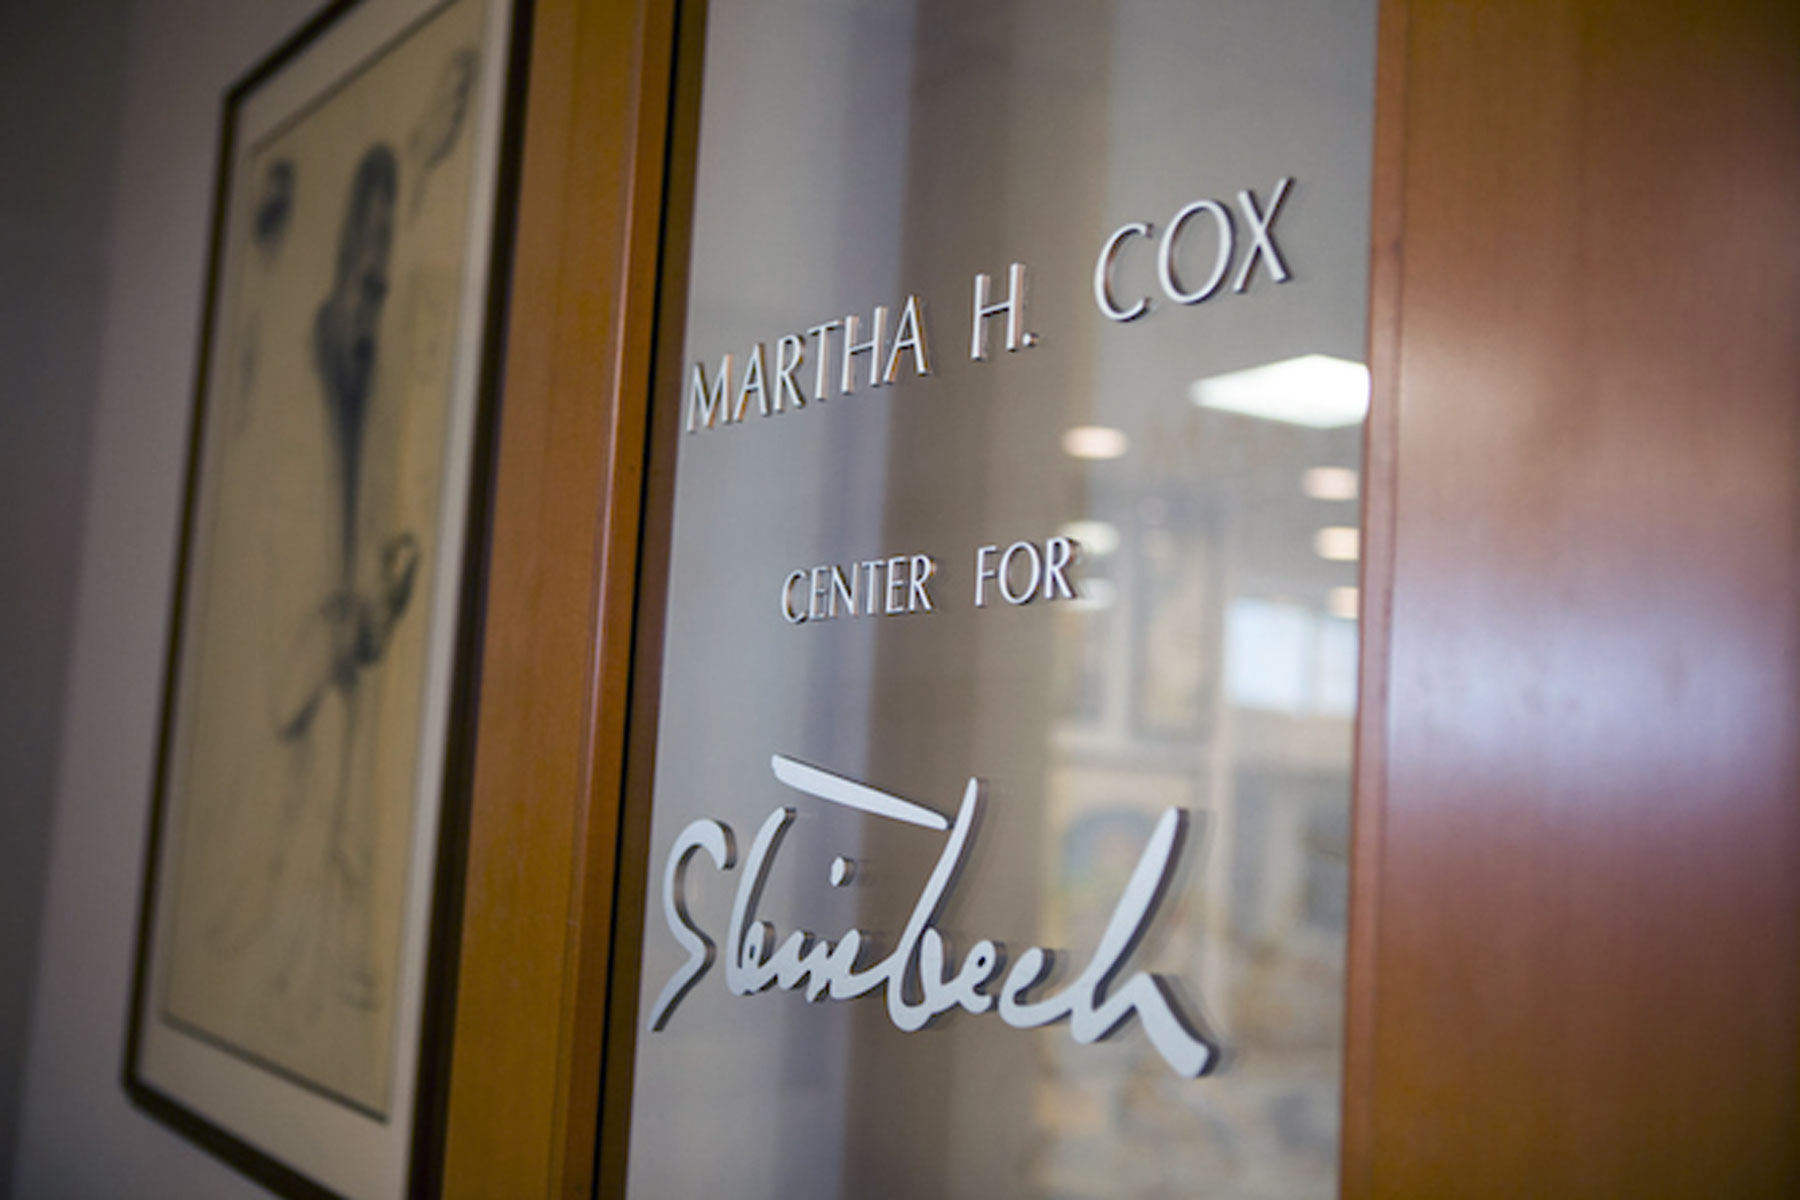 Martha Heasley Cox Center for Steinbeck Studies.